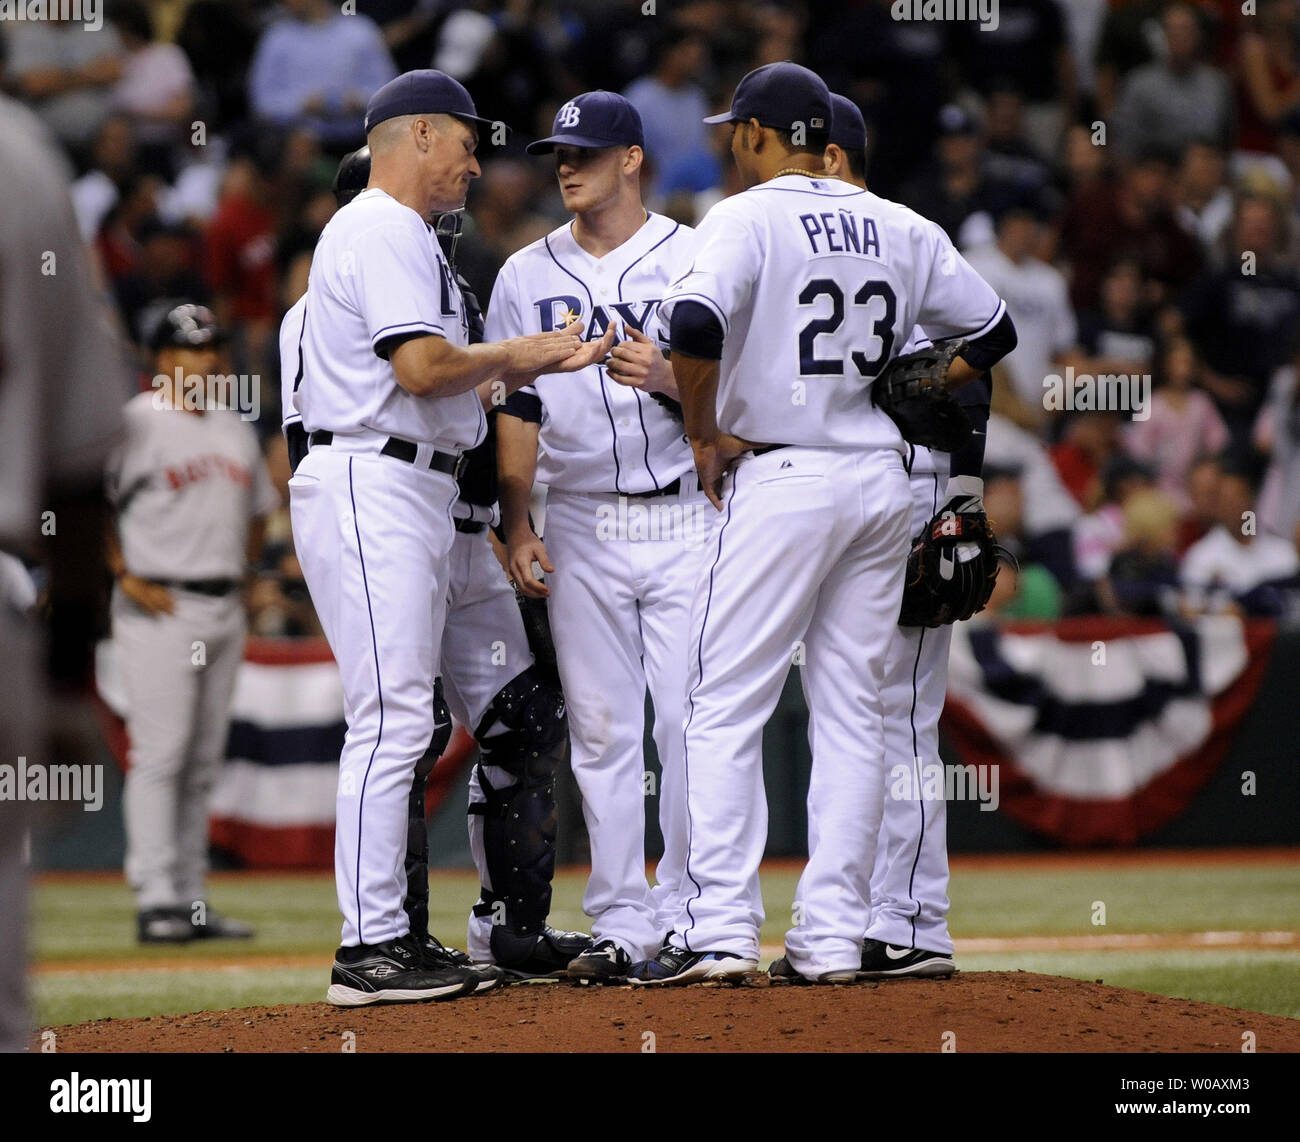 Tampa Bay Rays manager Larry Rothschild talks to pitcher J.P. Howell on the mound during the eighth inning of game one of the American League Conference Series against the Boston Red Sox at Tropicana Field in St. Petersburg, Florida on October 10, 2008.   (UPI Photo/Kevin Dietsch) . - Stock Image